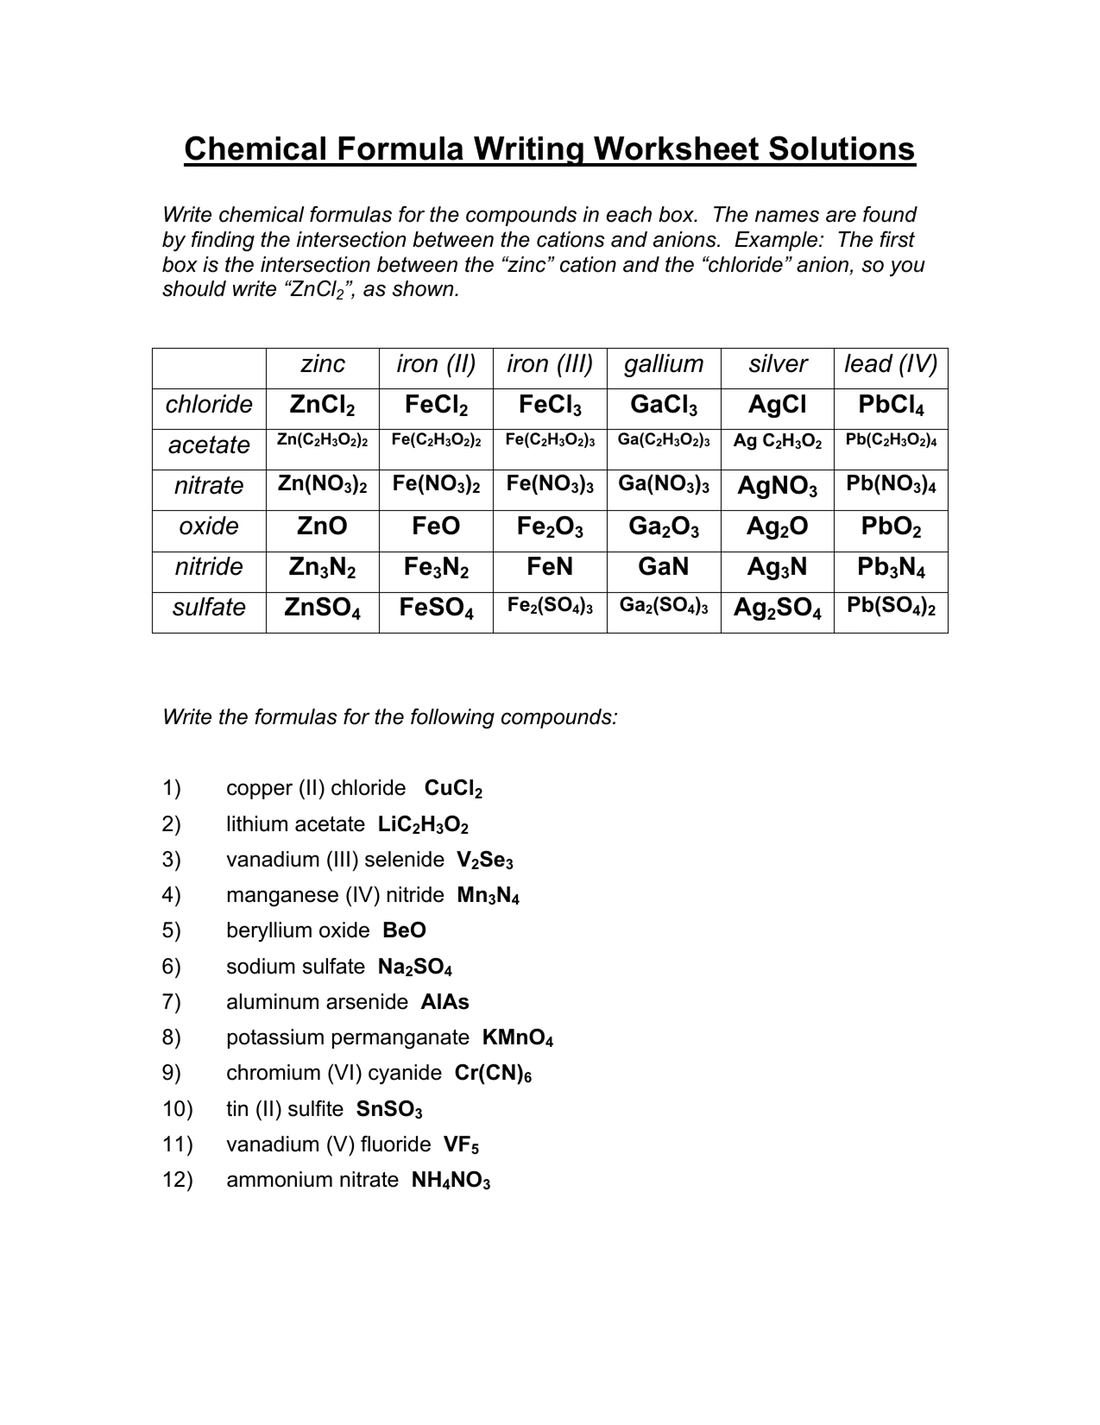 worksheet Writing Formulas Ionic Compounds Worksheet writing formulas for ionic compounds worksheet worksheets dimensions published in compound formula worksheets